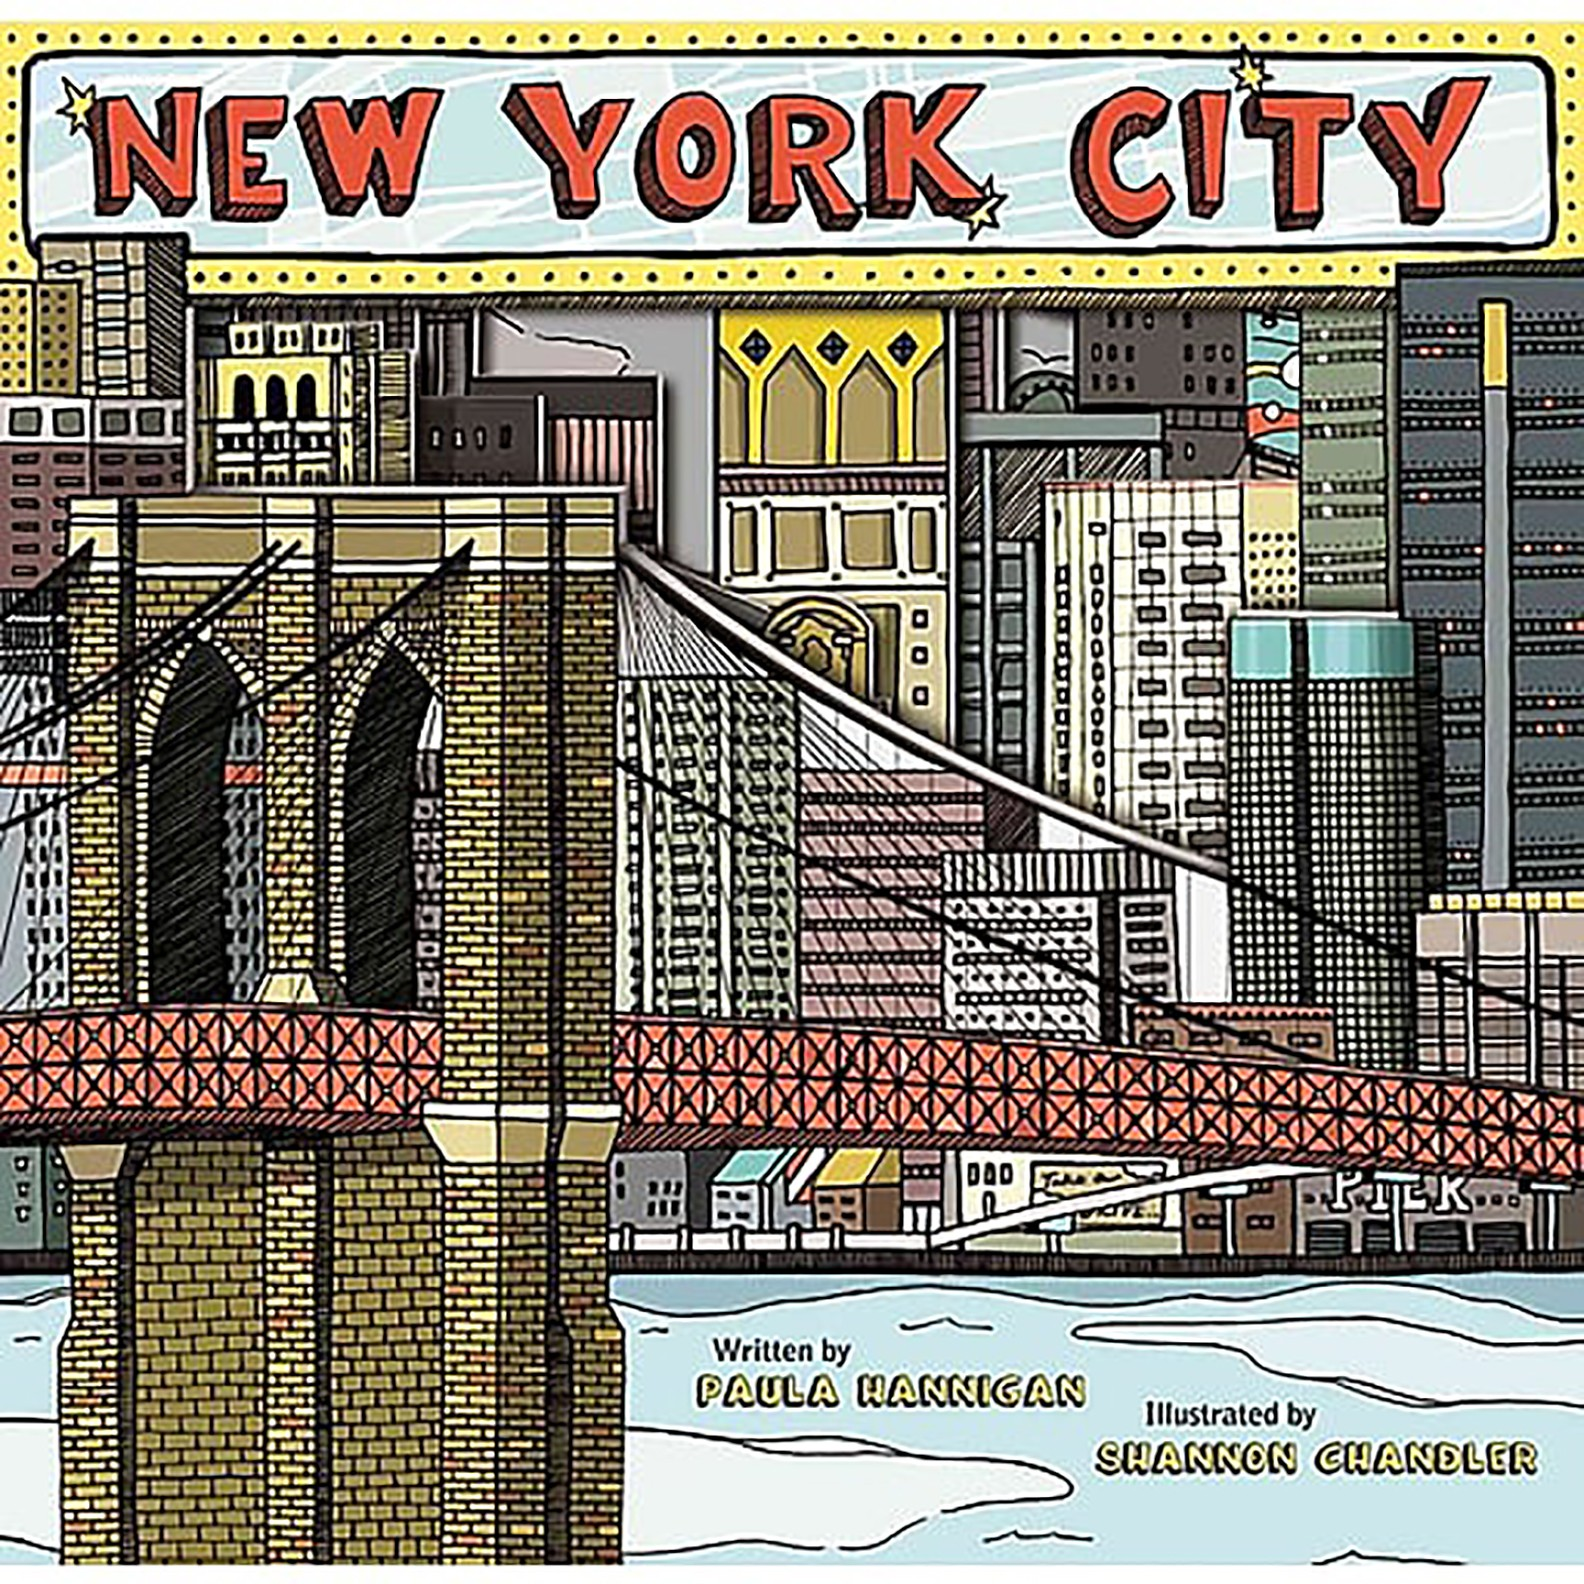 Cover of the children's book New York City